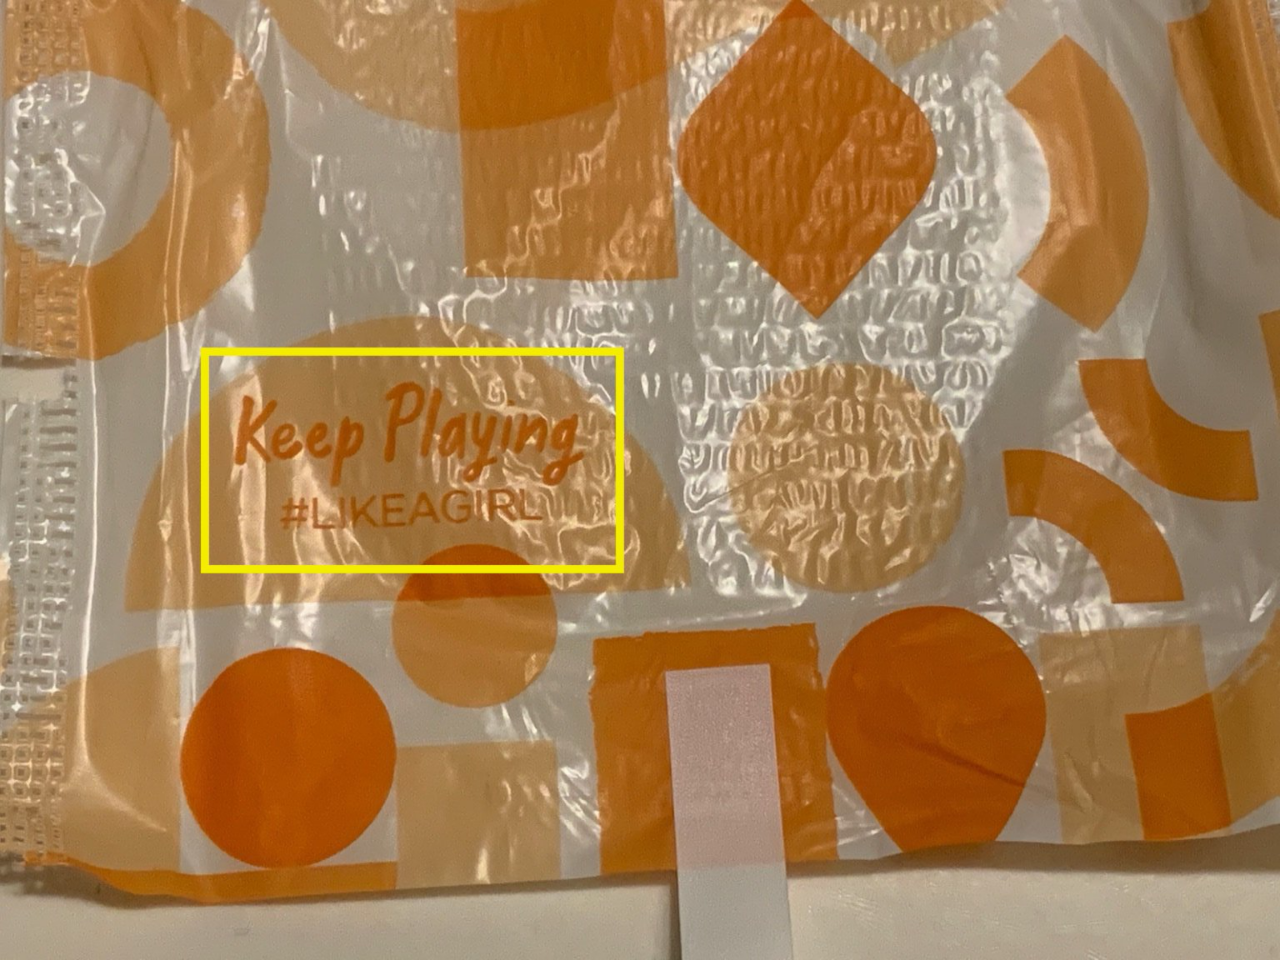 sanitary napkin wrapper with hashtag keep playing like a girl